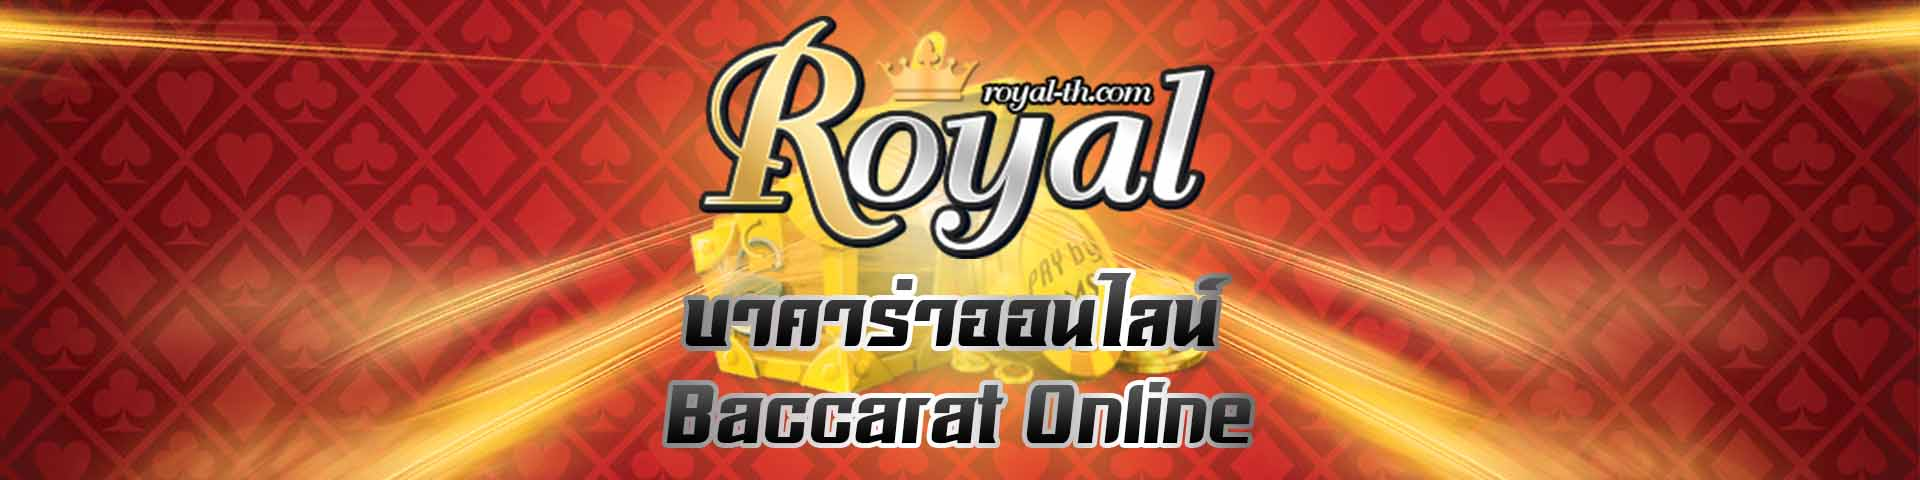 baccarat-banner-site